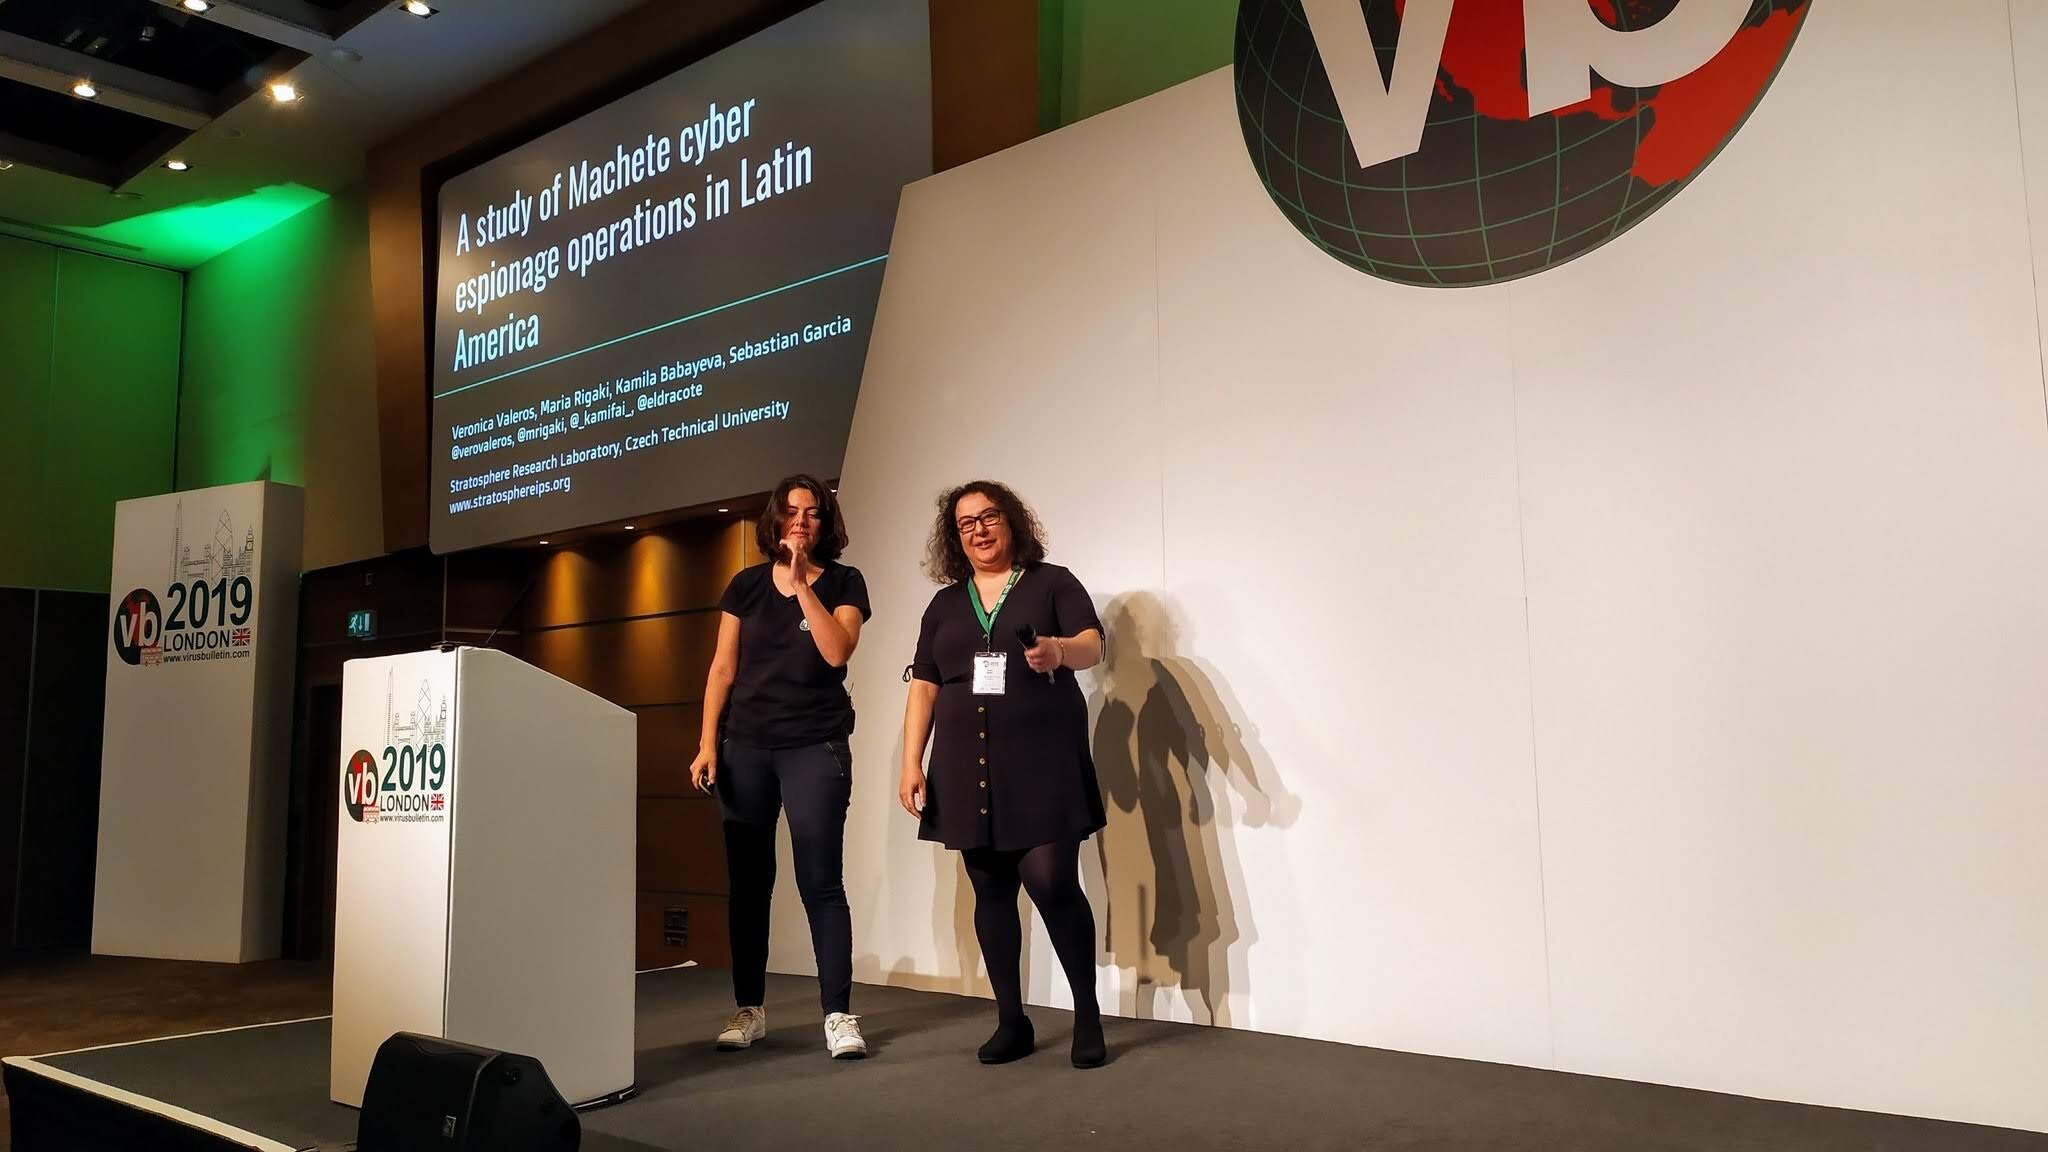 Veronica Valeros (left) and Maria Rigaki (right) presenting the research on Machete at the Virus Bulletin Conference in London.